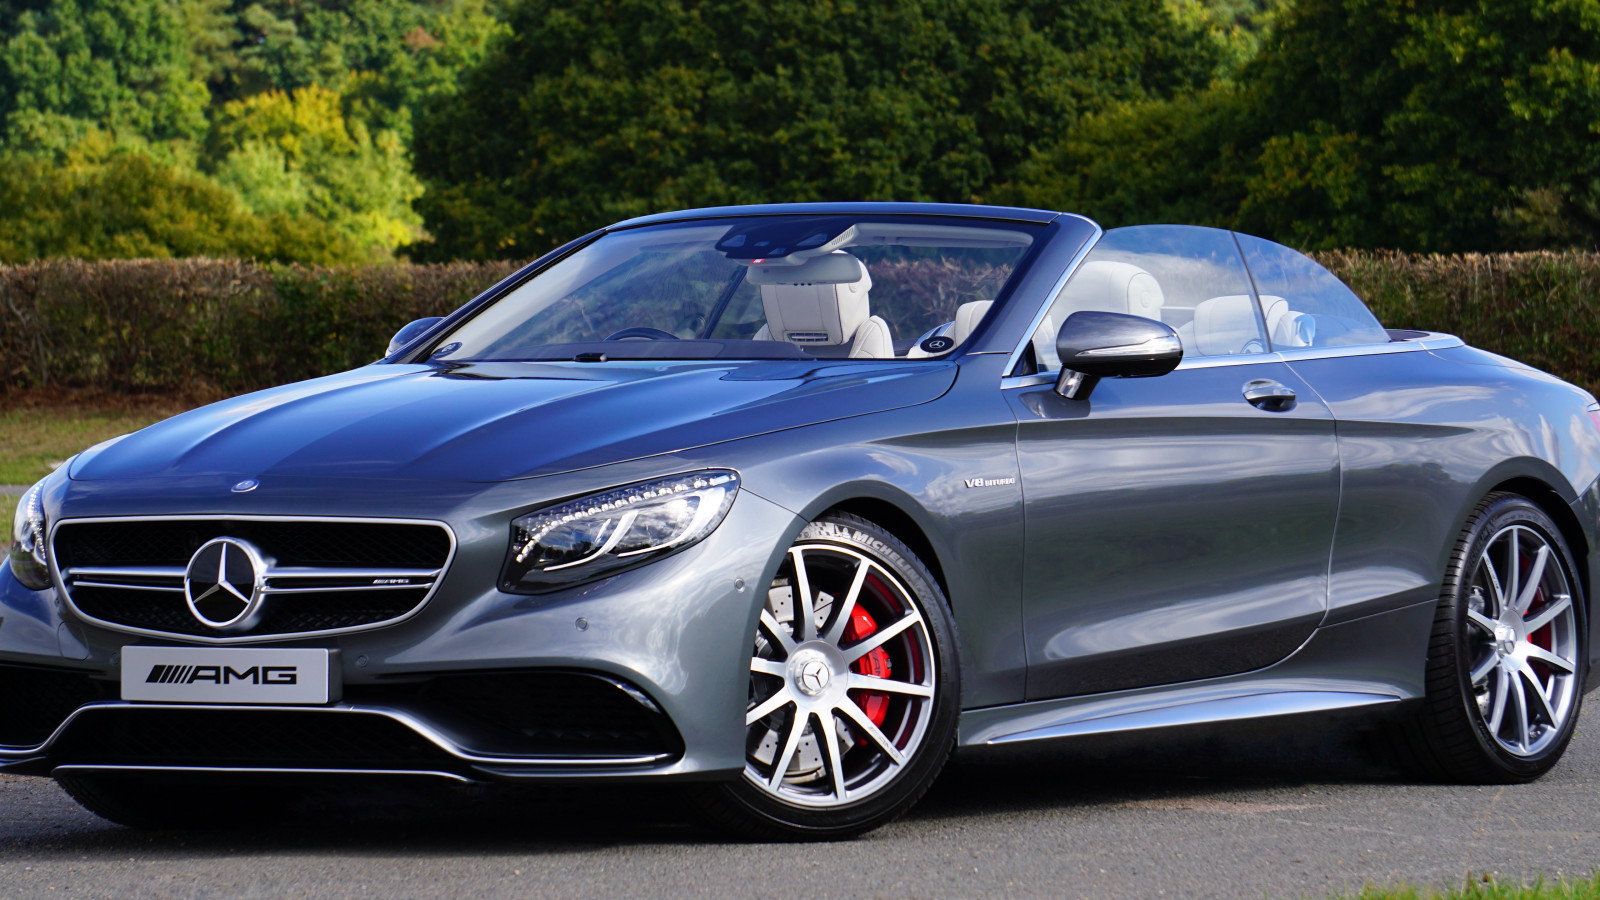 Mercedes AMG S63 convertible wallpaper 1600x900